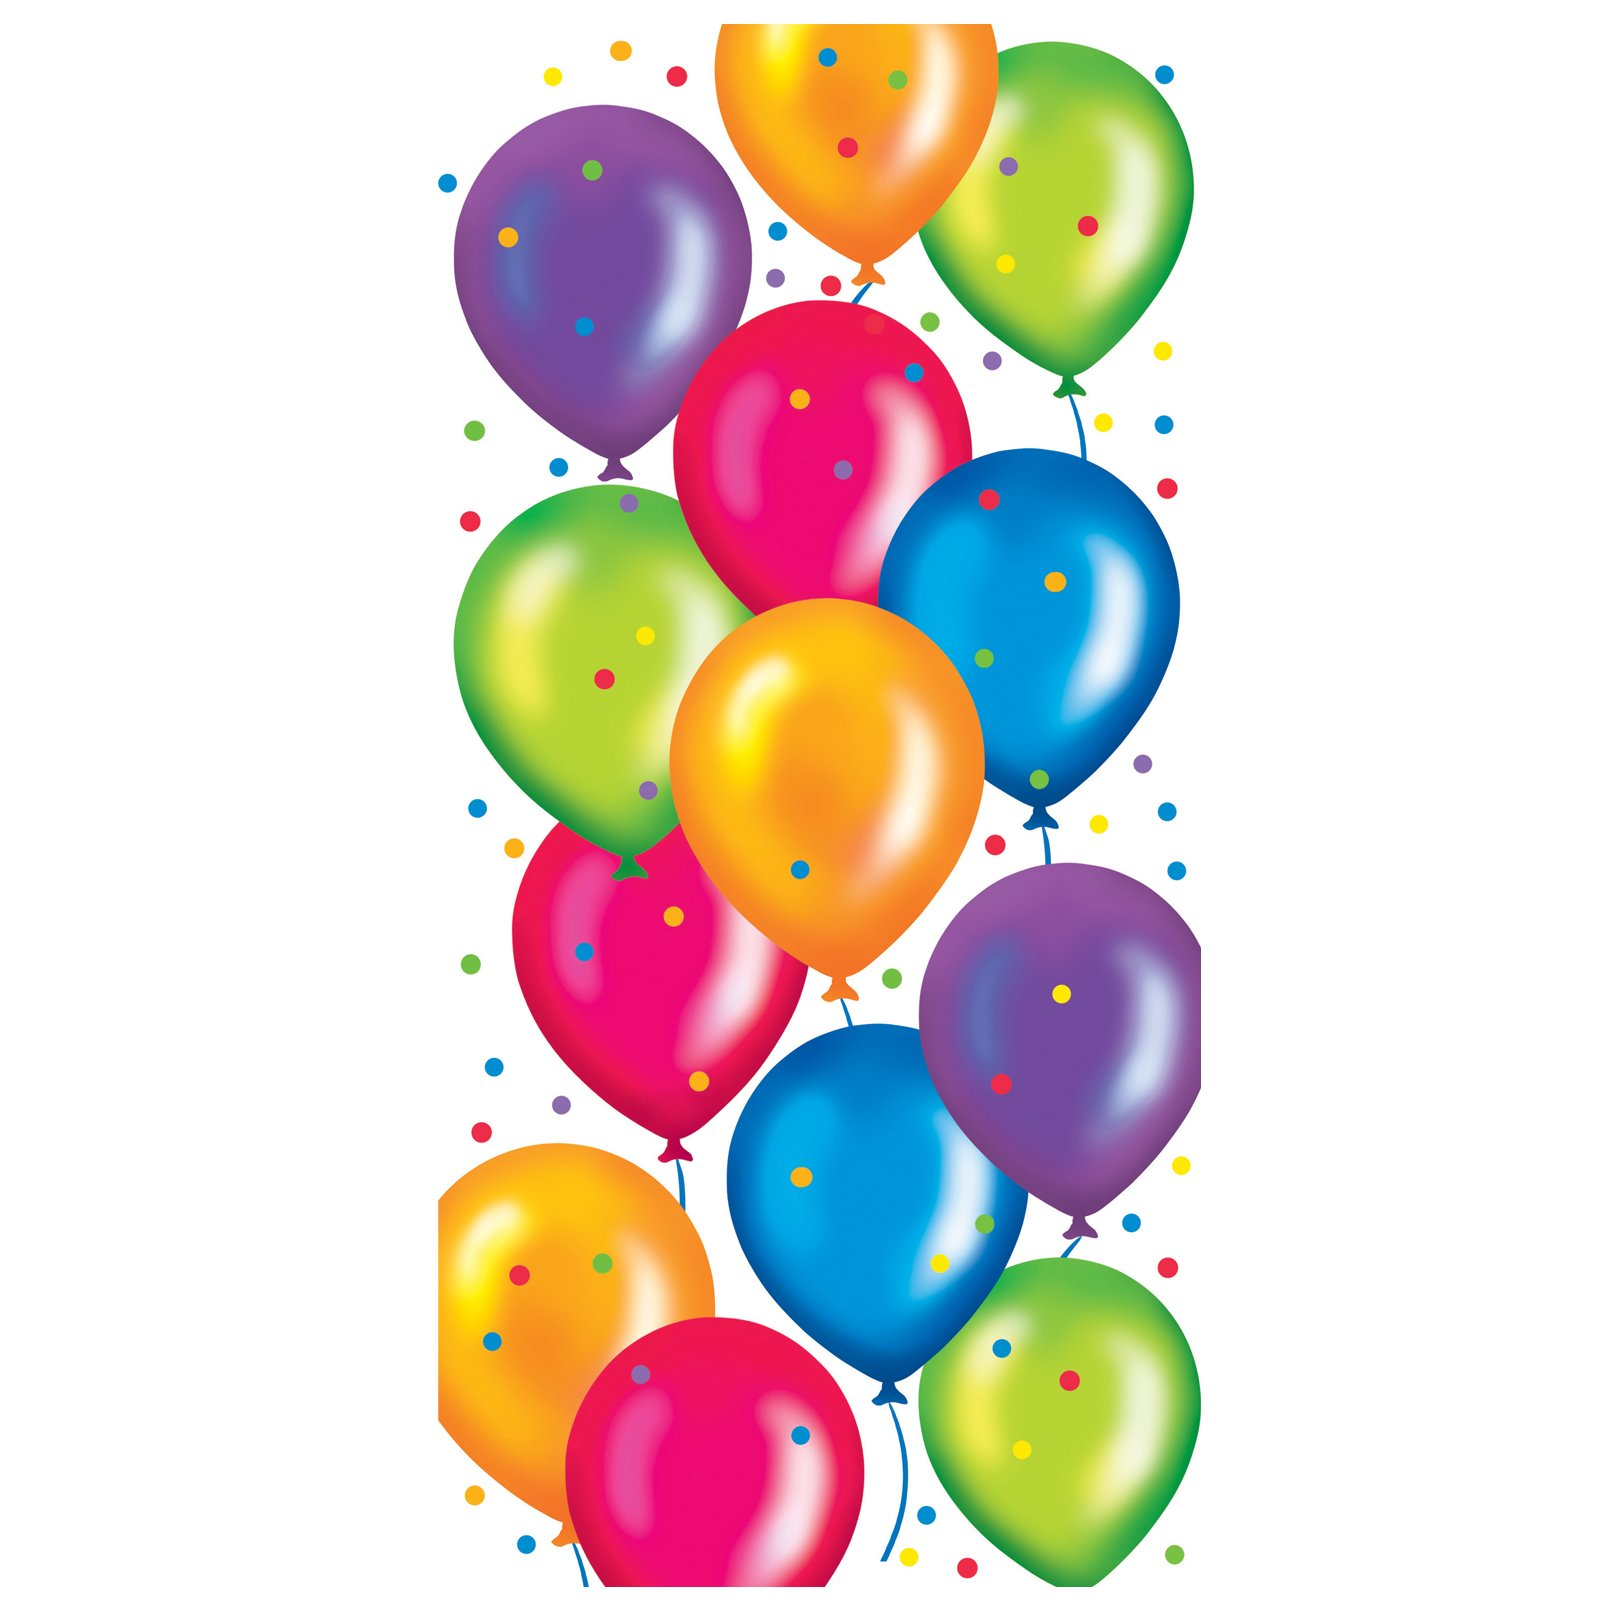 Birthday Balloons Cello Bags (20 count)